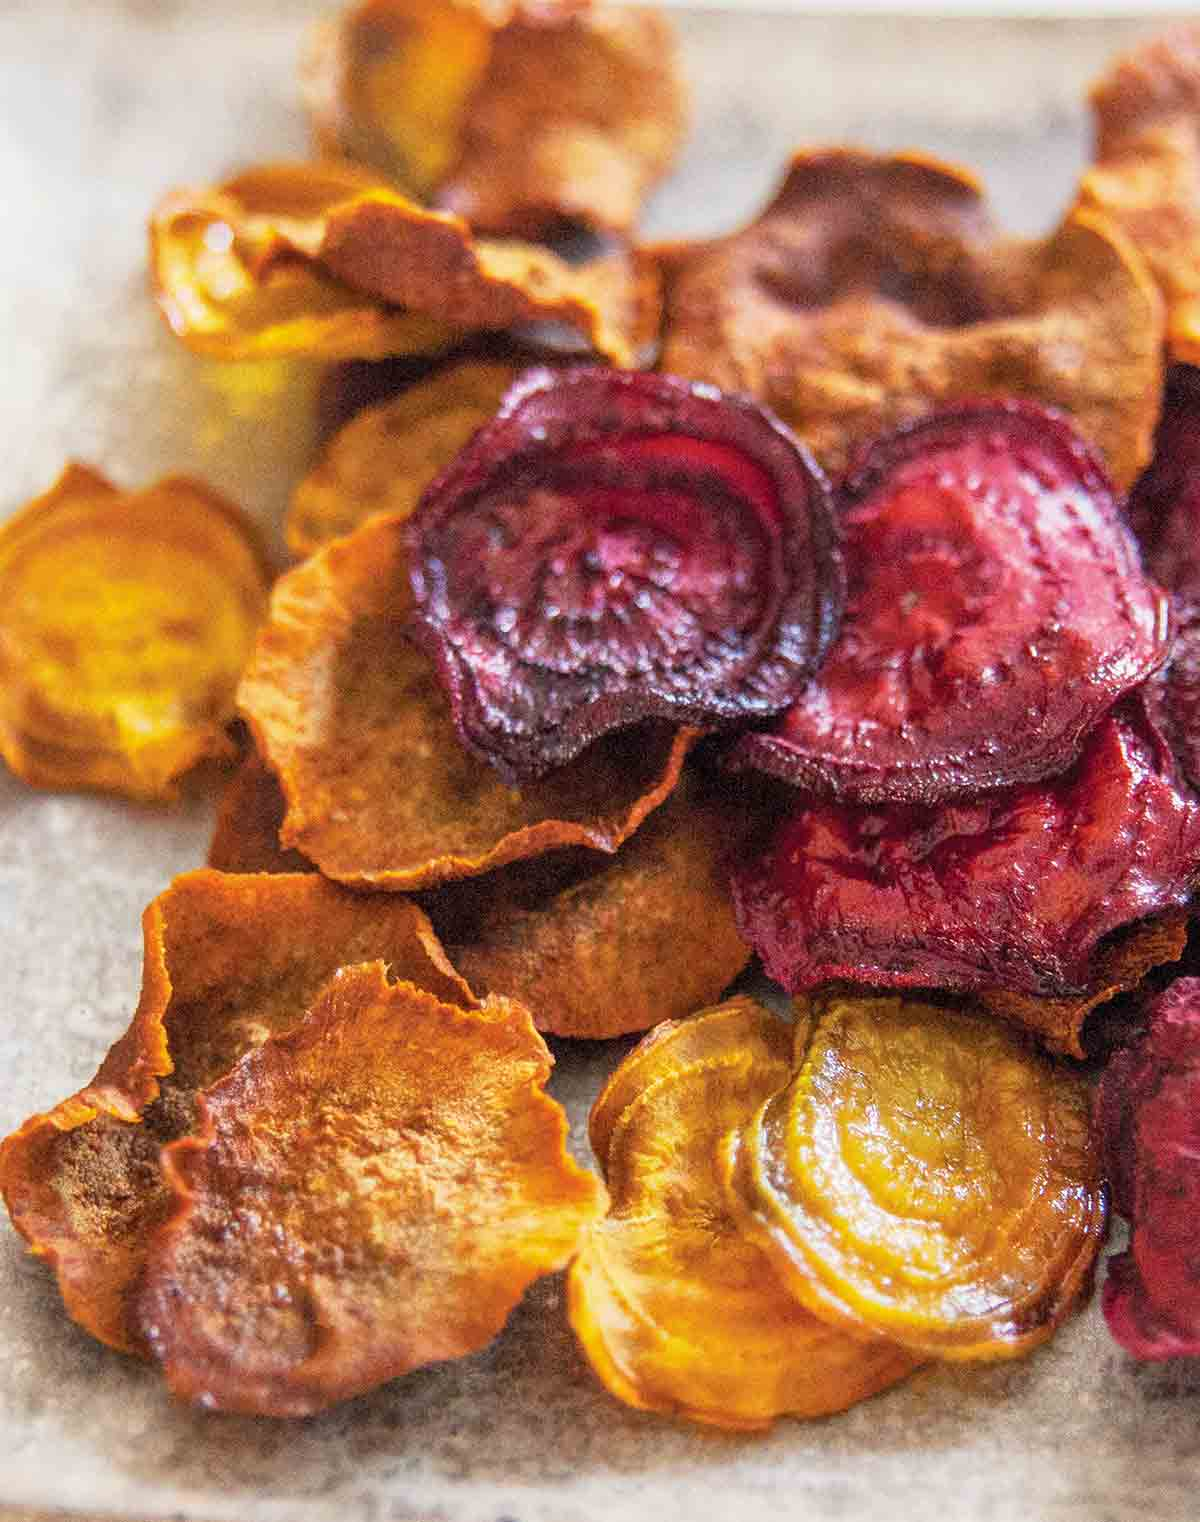 A pile of beet and sweet potato root vegetable chips.